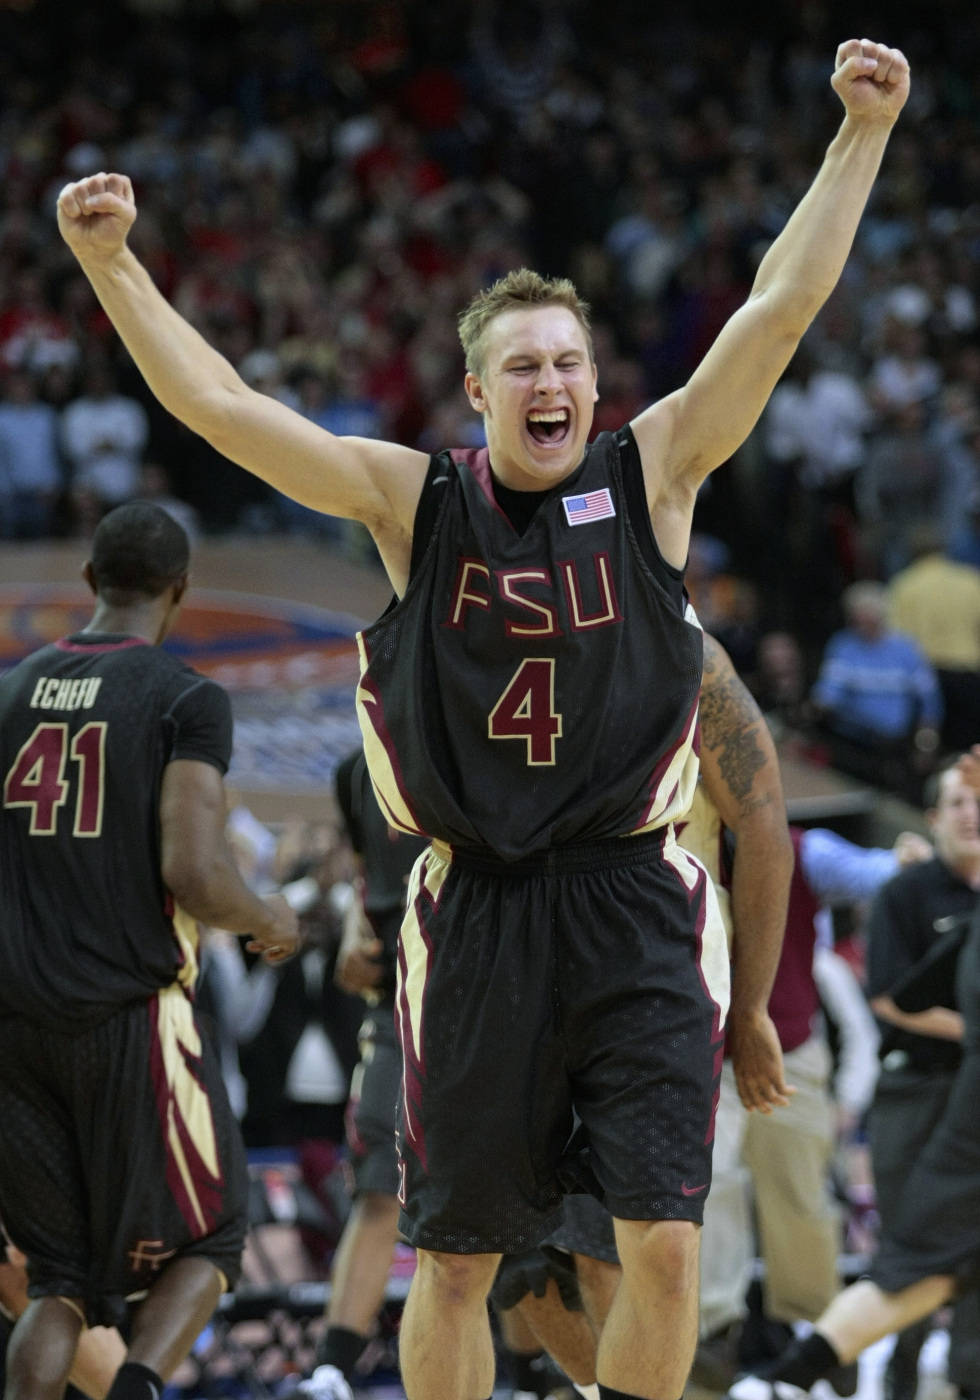 Florida State guard Deividas Dulkys (4) celebrates their 73-70 victory over No. 1 North Carolina during an NCAA college basketball game in the semifinals of the Atlantic Coast Conference men's tournament in Atlanta, Saturday, March 14, 2009. (AP Photo/Dave Martin)